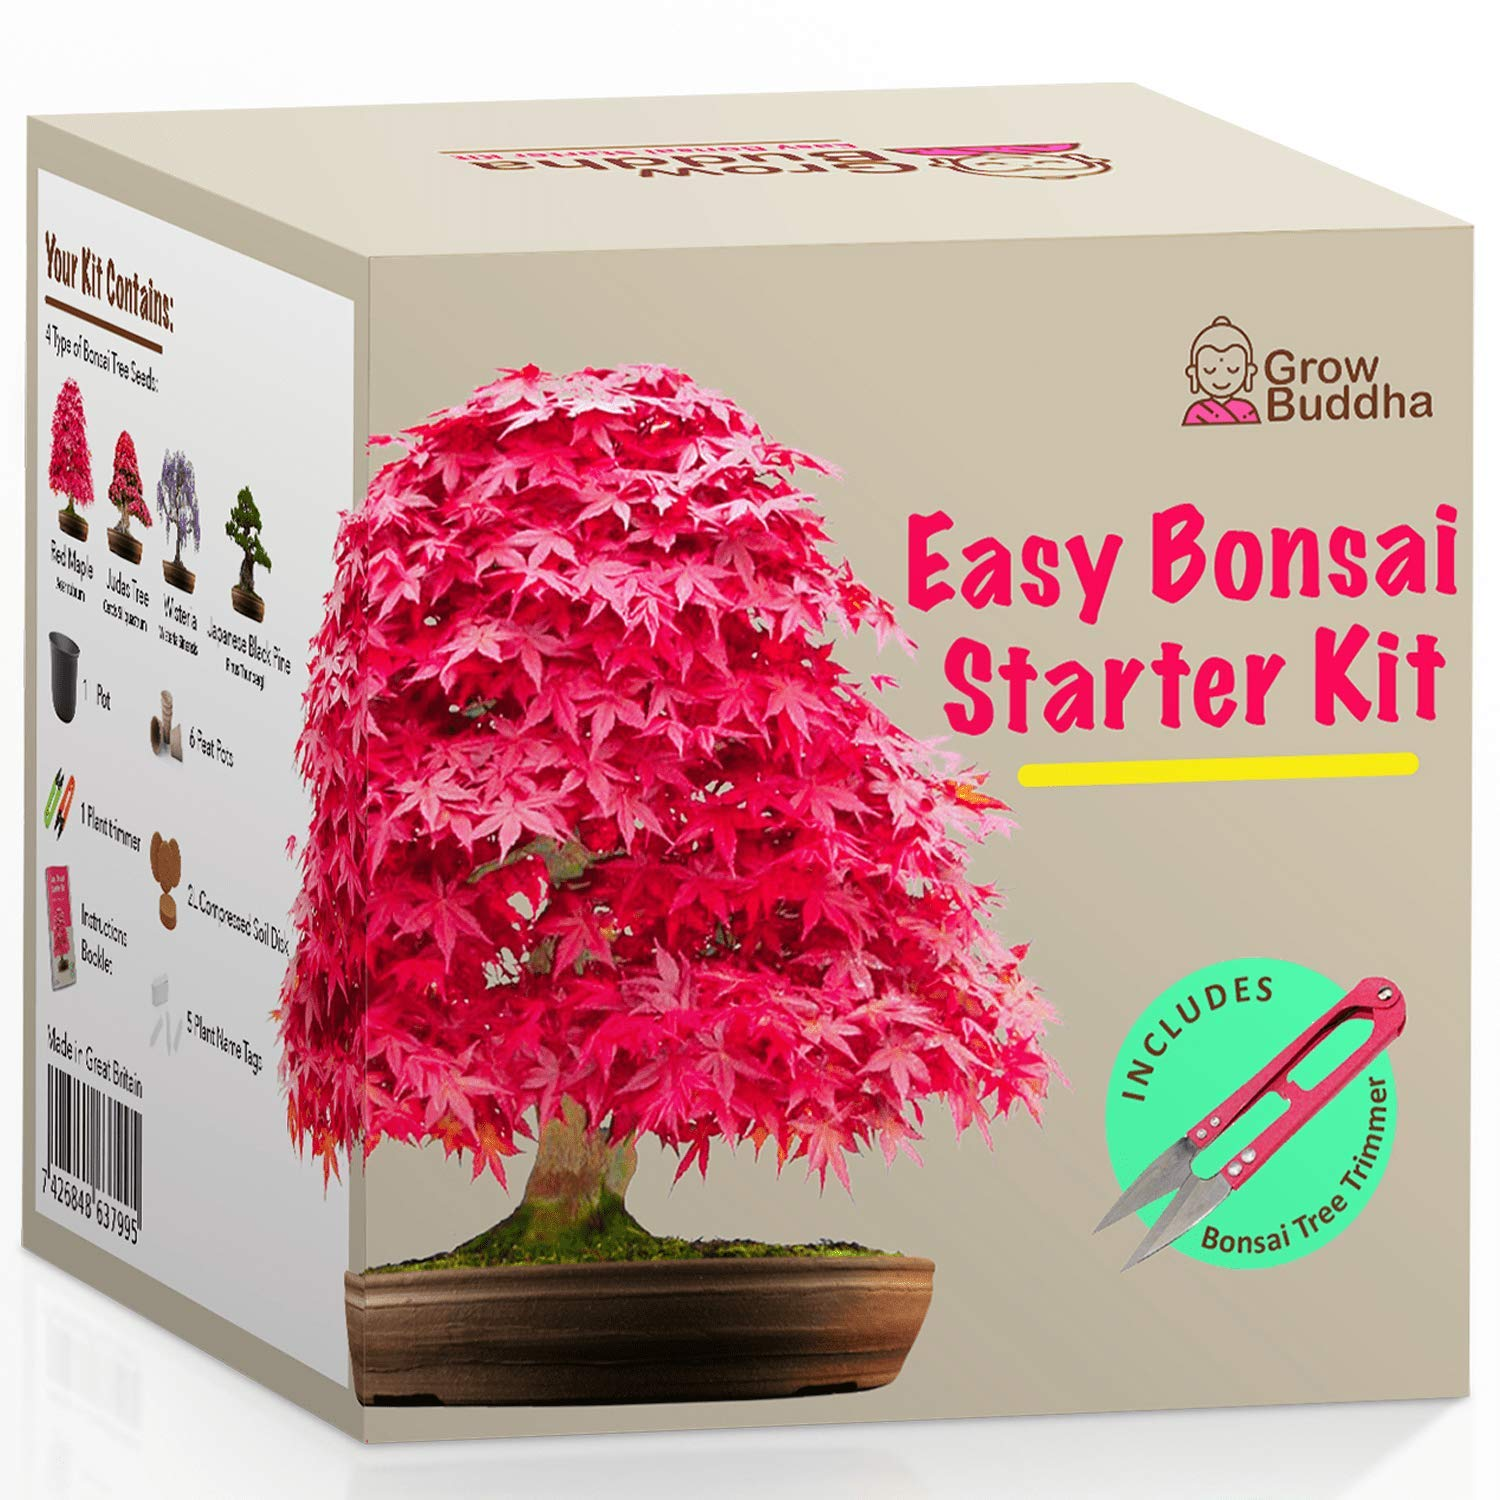 Grow Your own Bonsai kit - Easily Grow 4 Types of Bonsai Trees with Our Complete Beginner Friendly Bonsai Seeds Starter kit - Unique Seed kit Gift idea